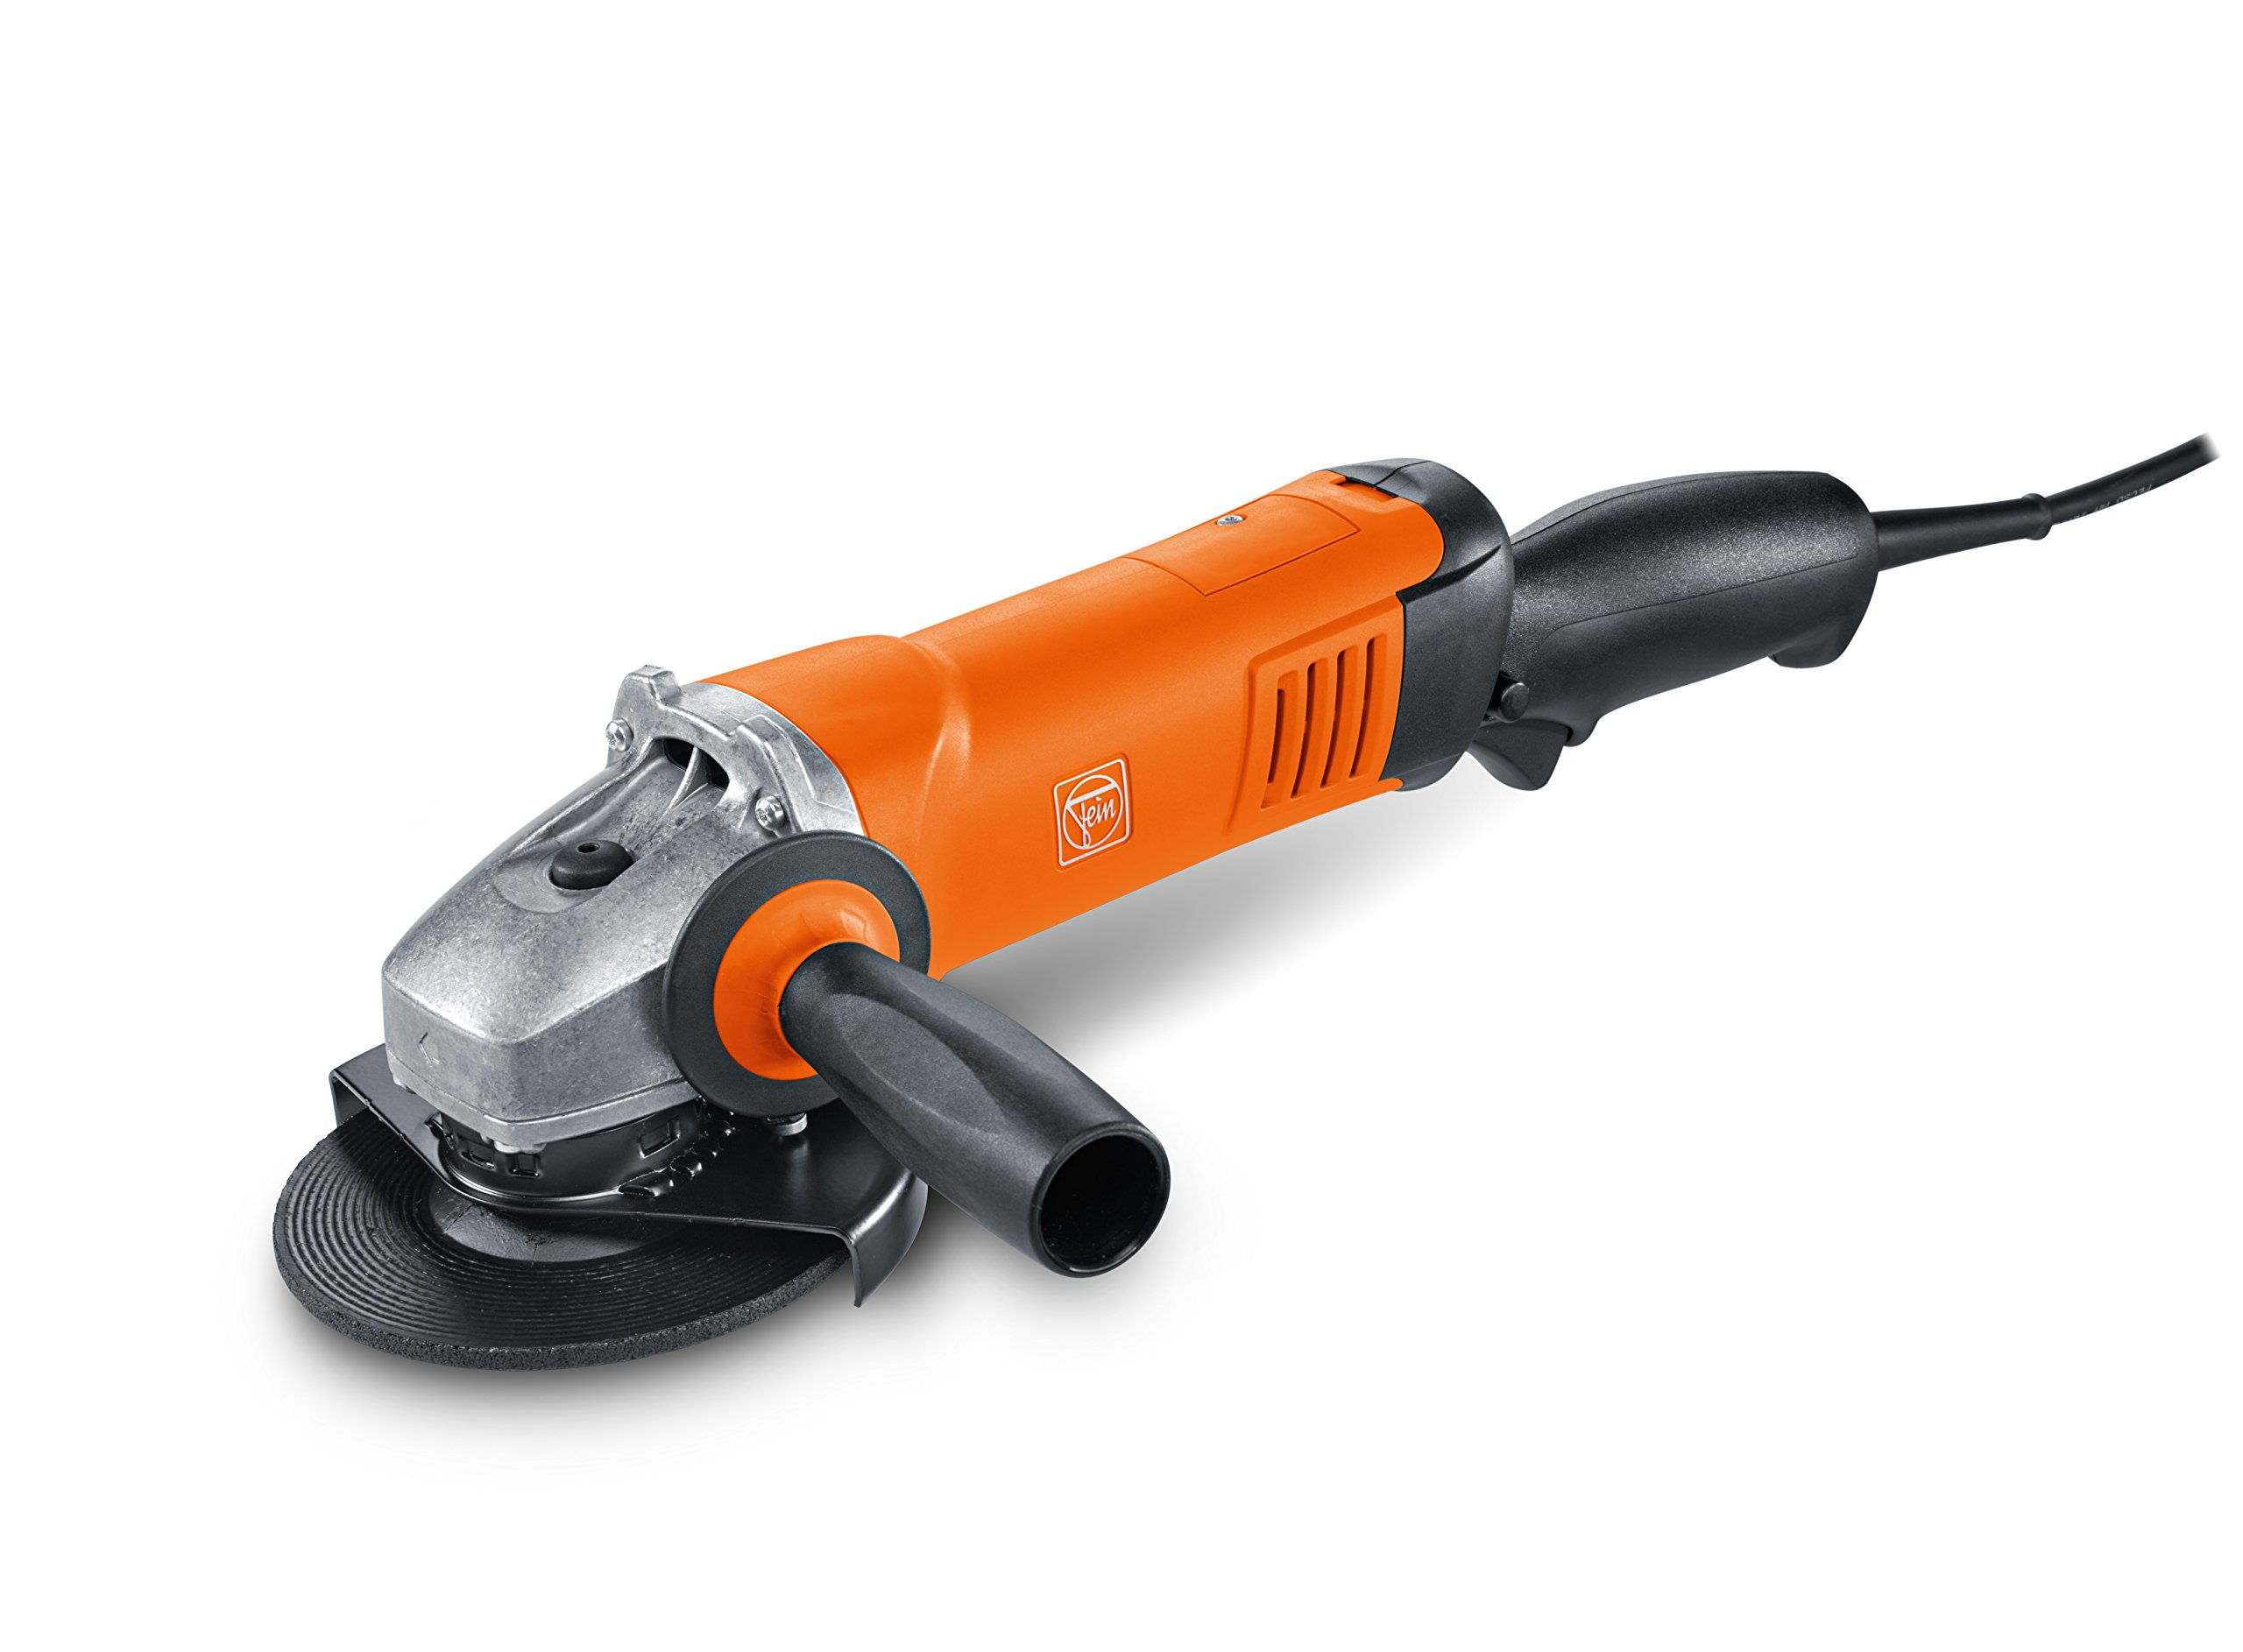 Fein 72222160090/WSG17-150 PRT Handy Compact Angle Grinder With Fein Ergogrip For Fatigue-Free Work